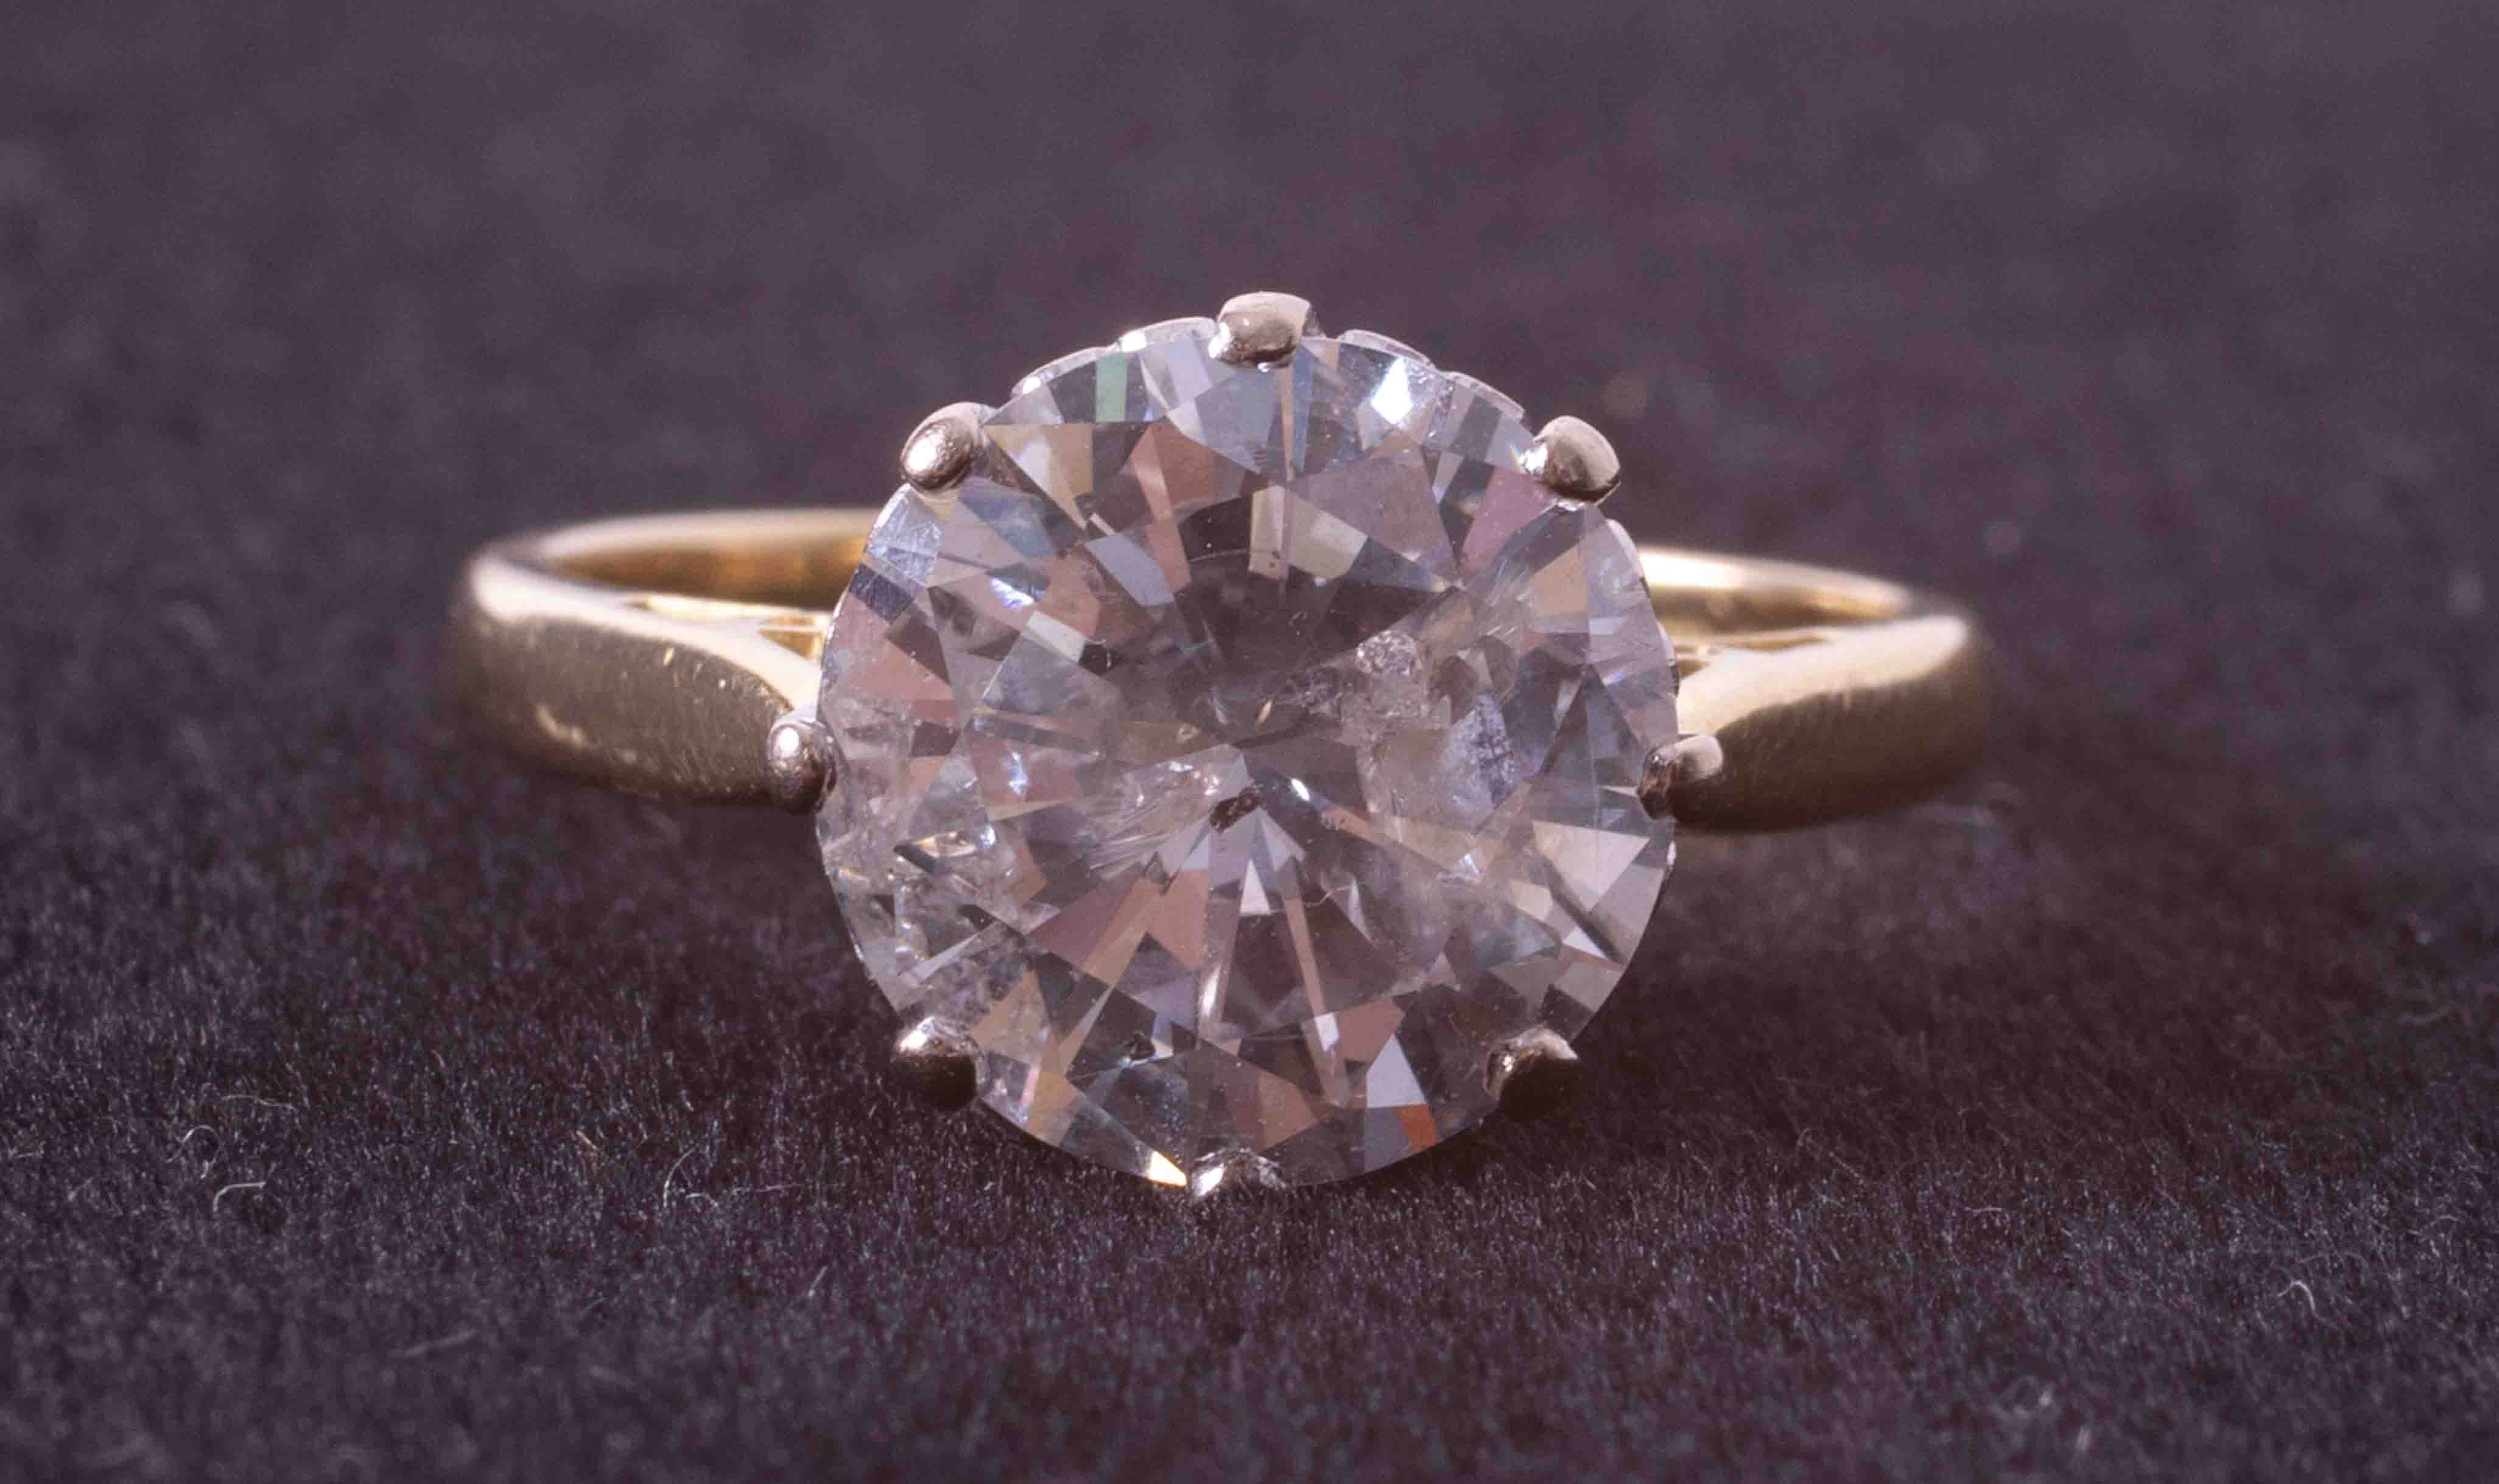 An impressive 18ct yellow & white gold diamond solitaire ring set with approx. 4.00 carats of - Image 3 of 6